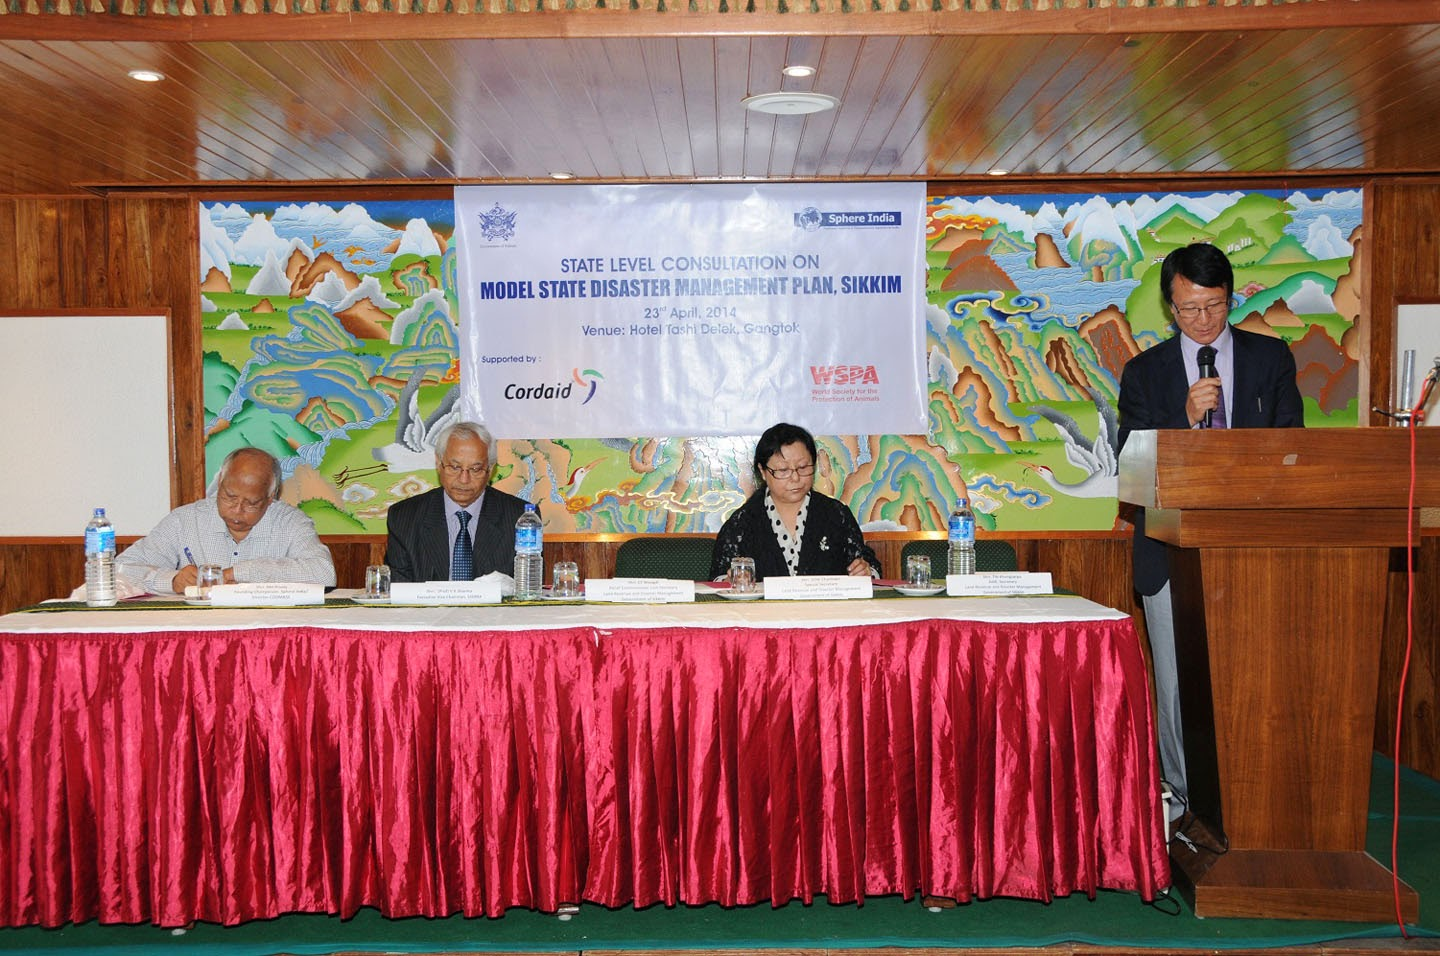 10-ru imagesize:1440x956 GANGTOK, 23 Apr [IPR]: A state-level Consultation on Model State Disaster Management plan was held at a local hotel, today with a view of making Sikkim a ...